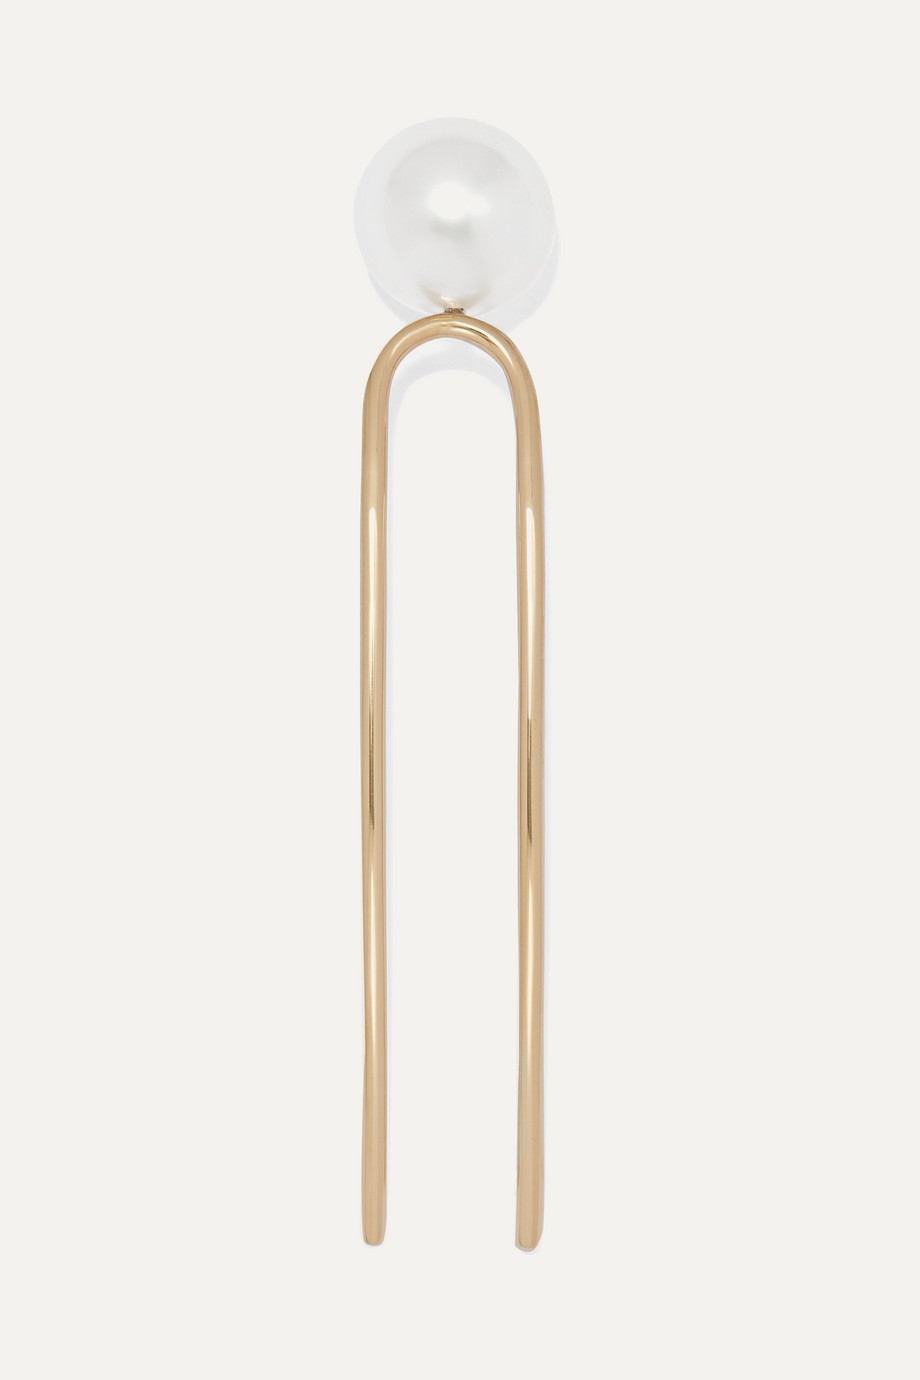 Sophie Bille Brahe Grace Simple 10-karat gold pearl hair slide